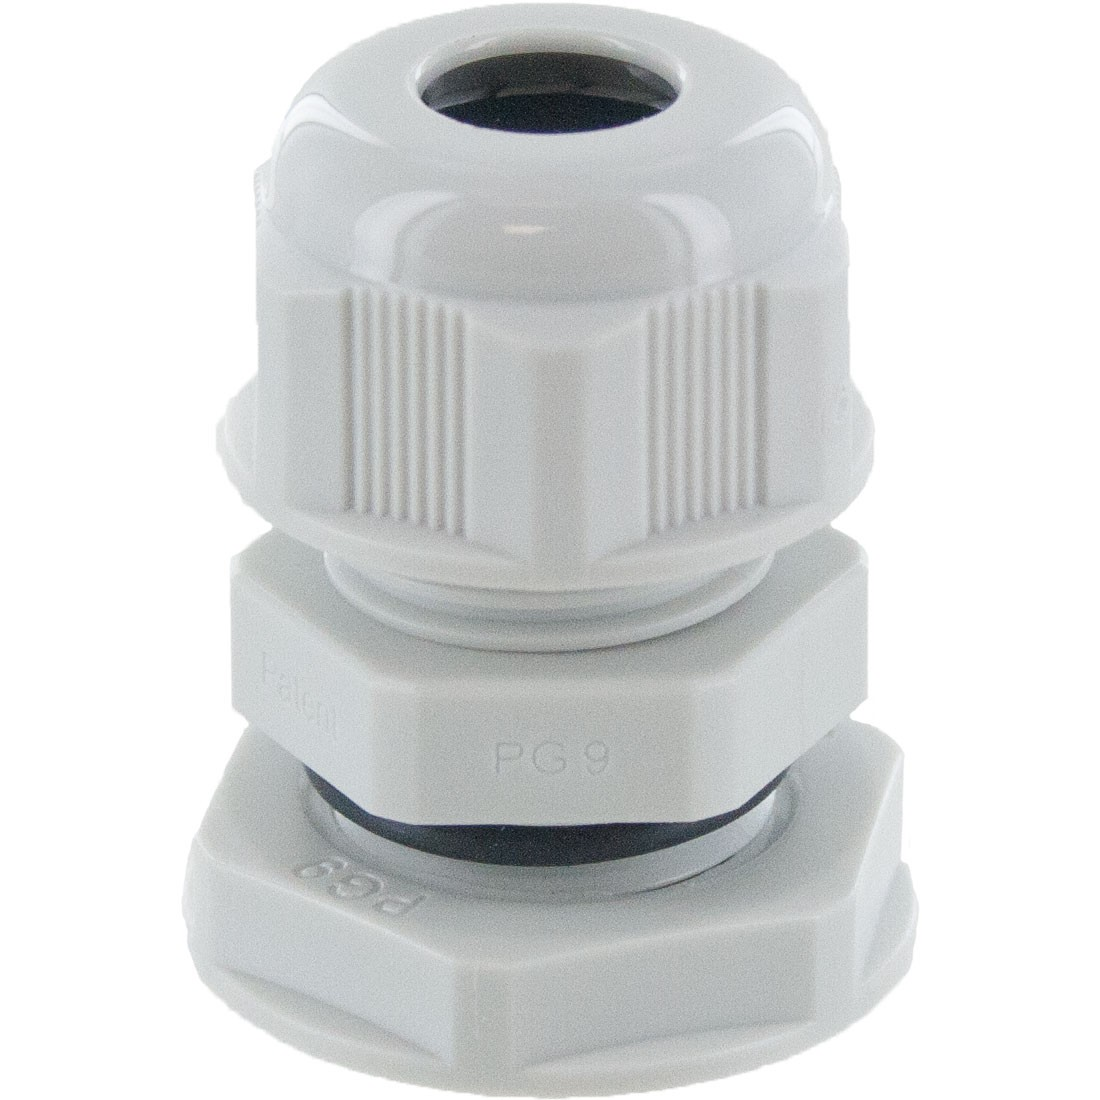 Pg9 Nylon Dome Cap Cable Gland Gray Elecdirect Cole Herseecole Hersee Spst Onoff Toggle Switch 5582bx5582bx